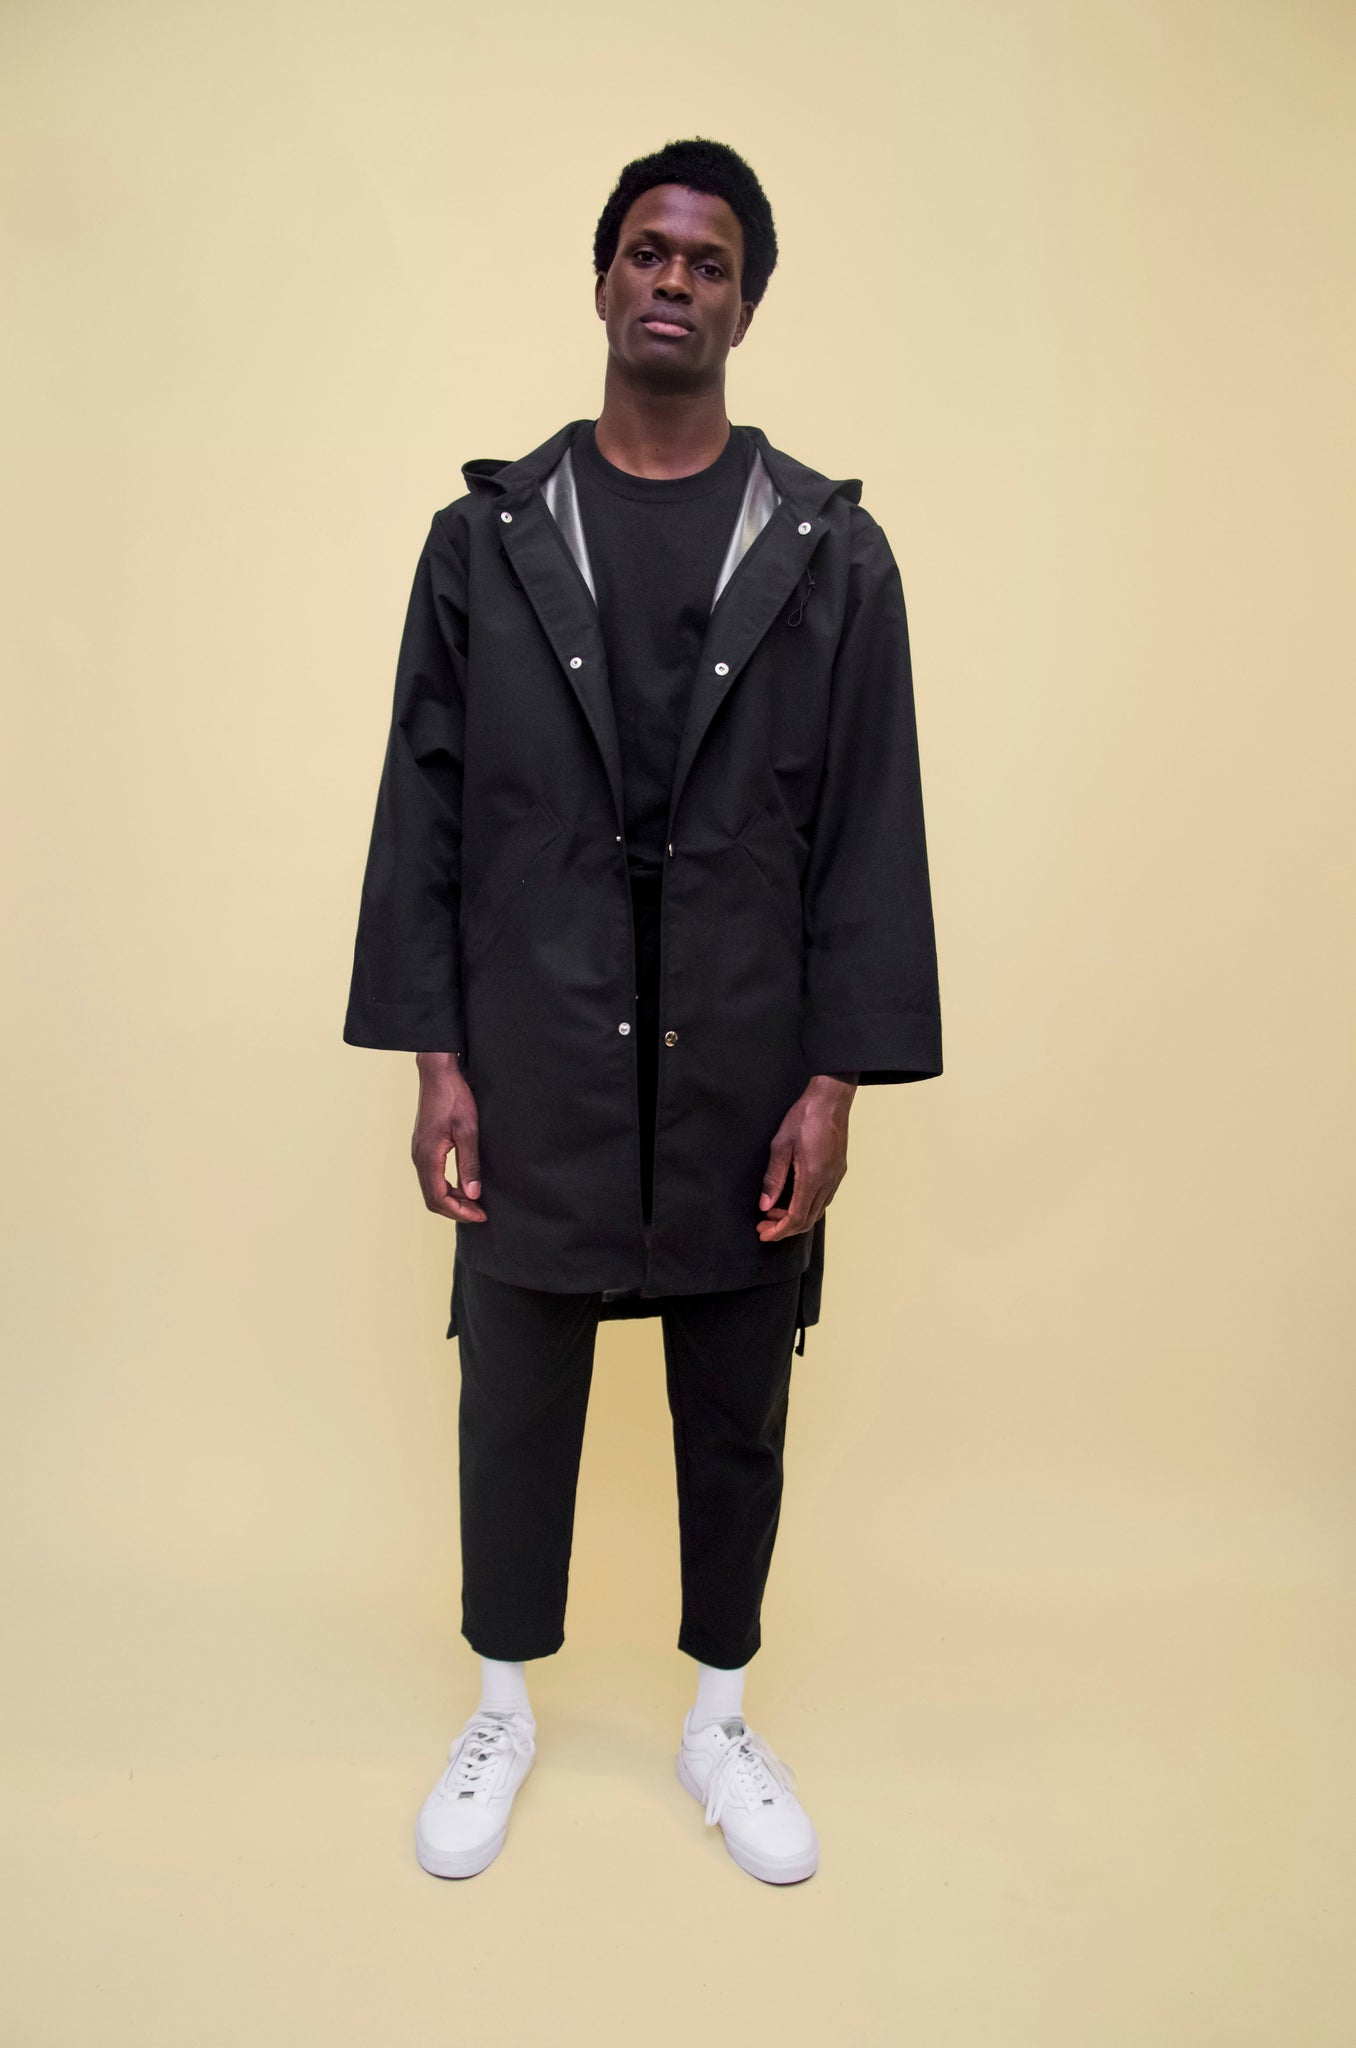 The North Hill Colline Rain Jacket is a made in France waterproof Jacket